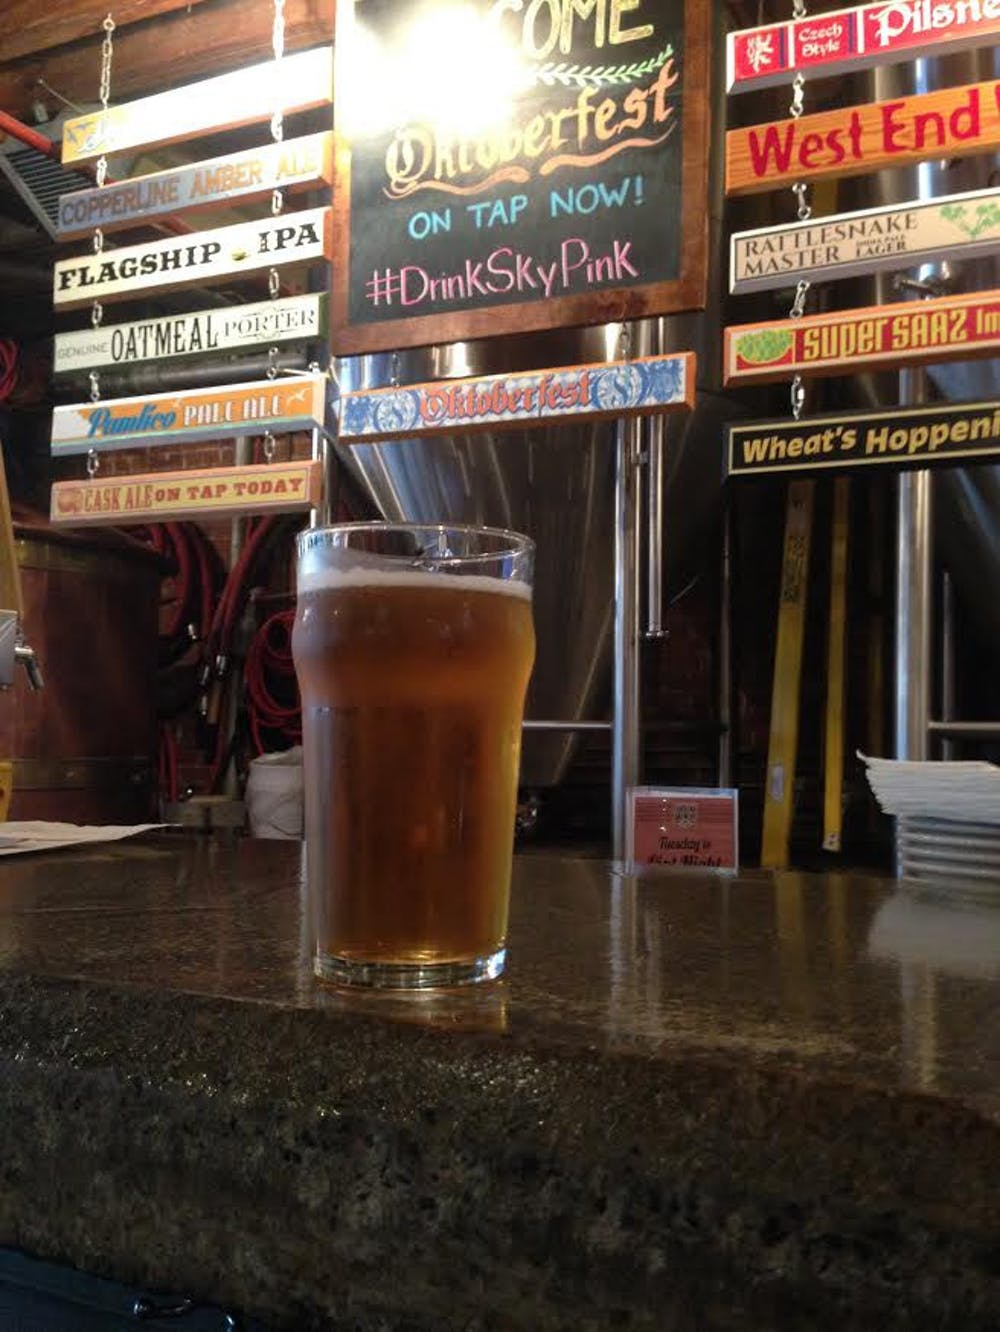 <p>The Great American Beer Festival will include local brewers. The festival starts tomorrow and runs through the 8th.&nbsp;</p>